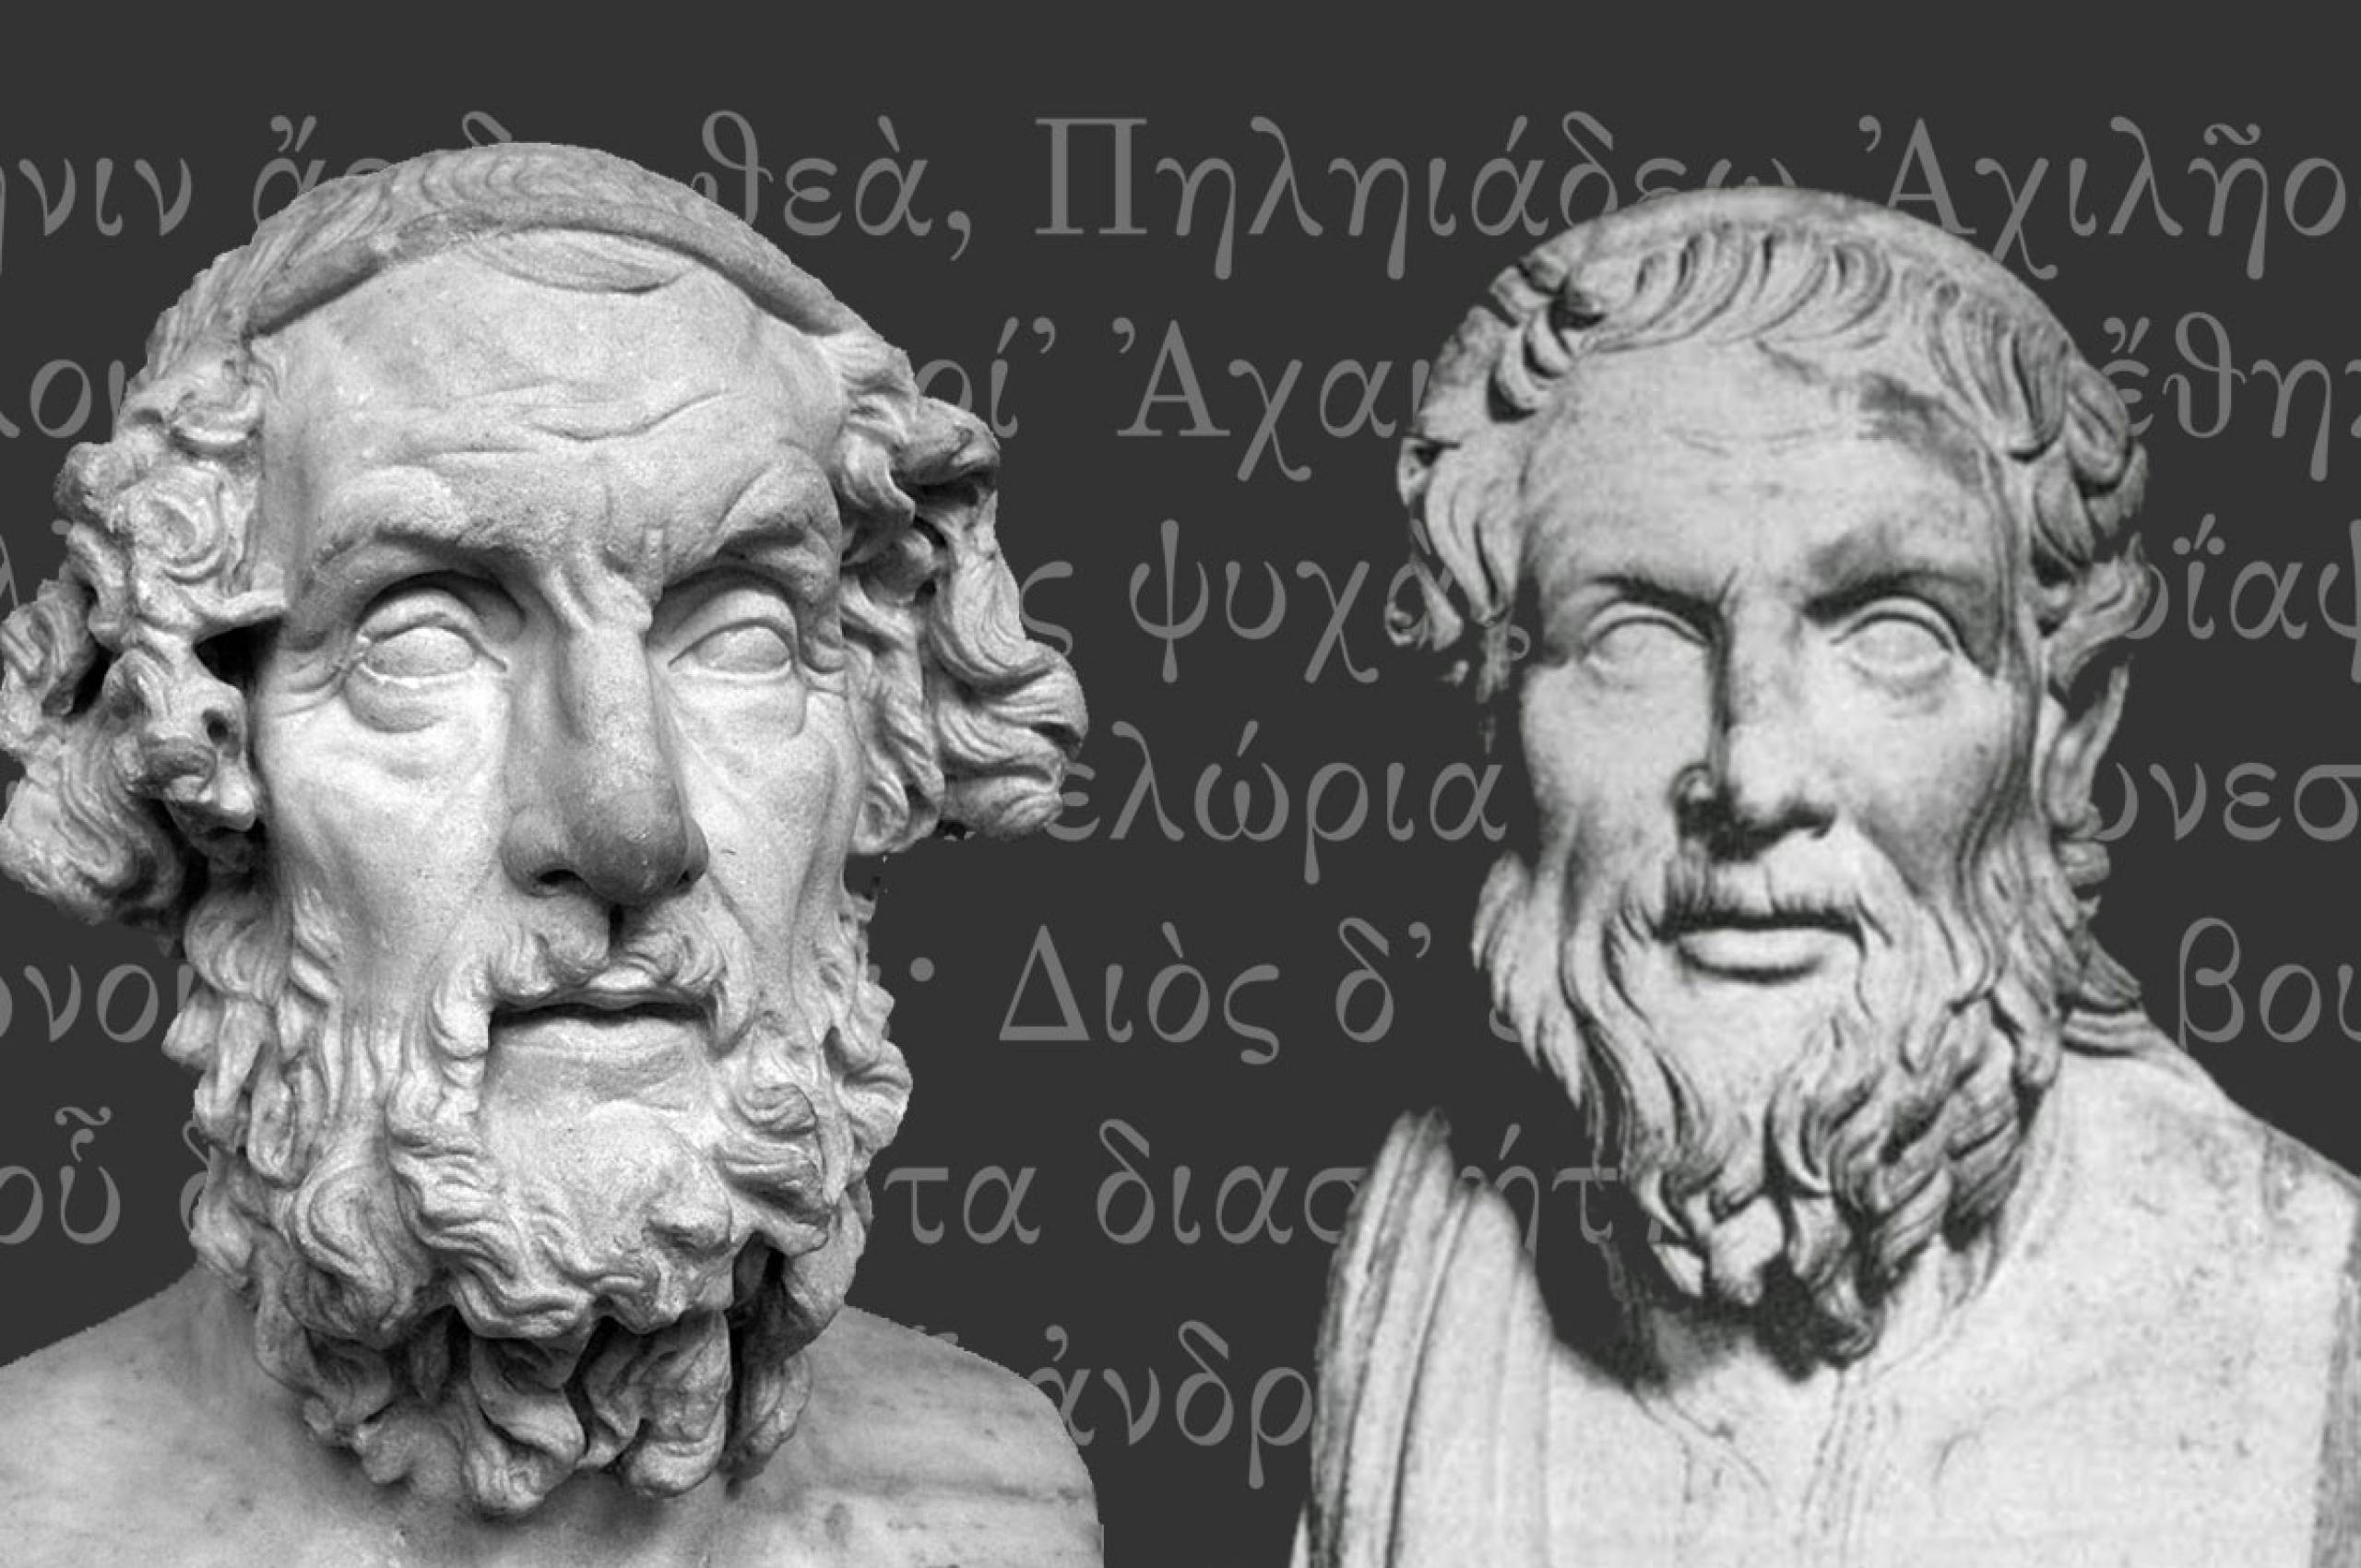 Busts of Homer and Apollonius of Rhodes